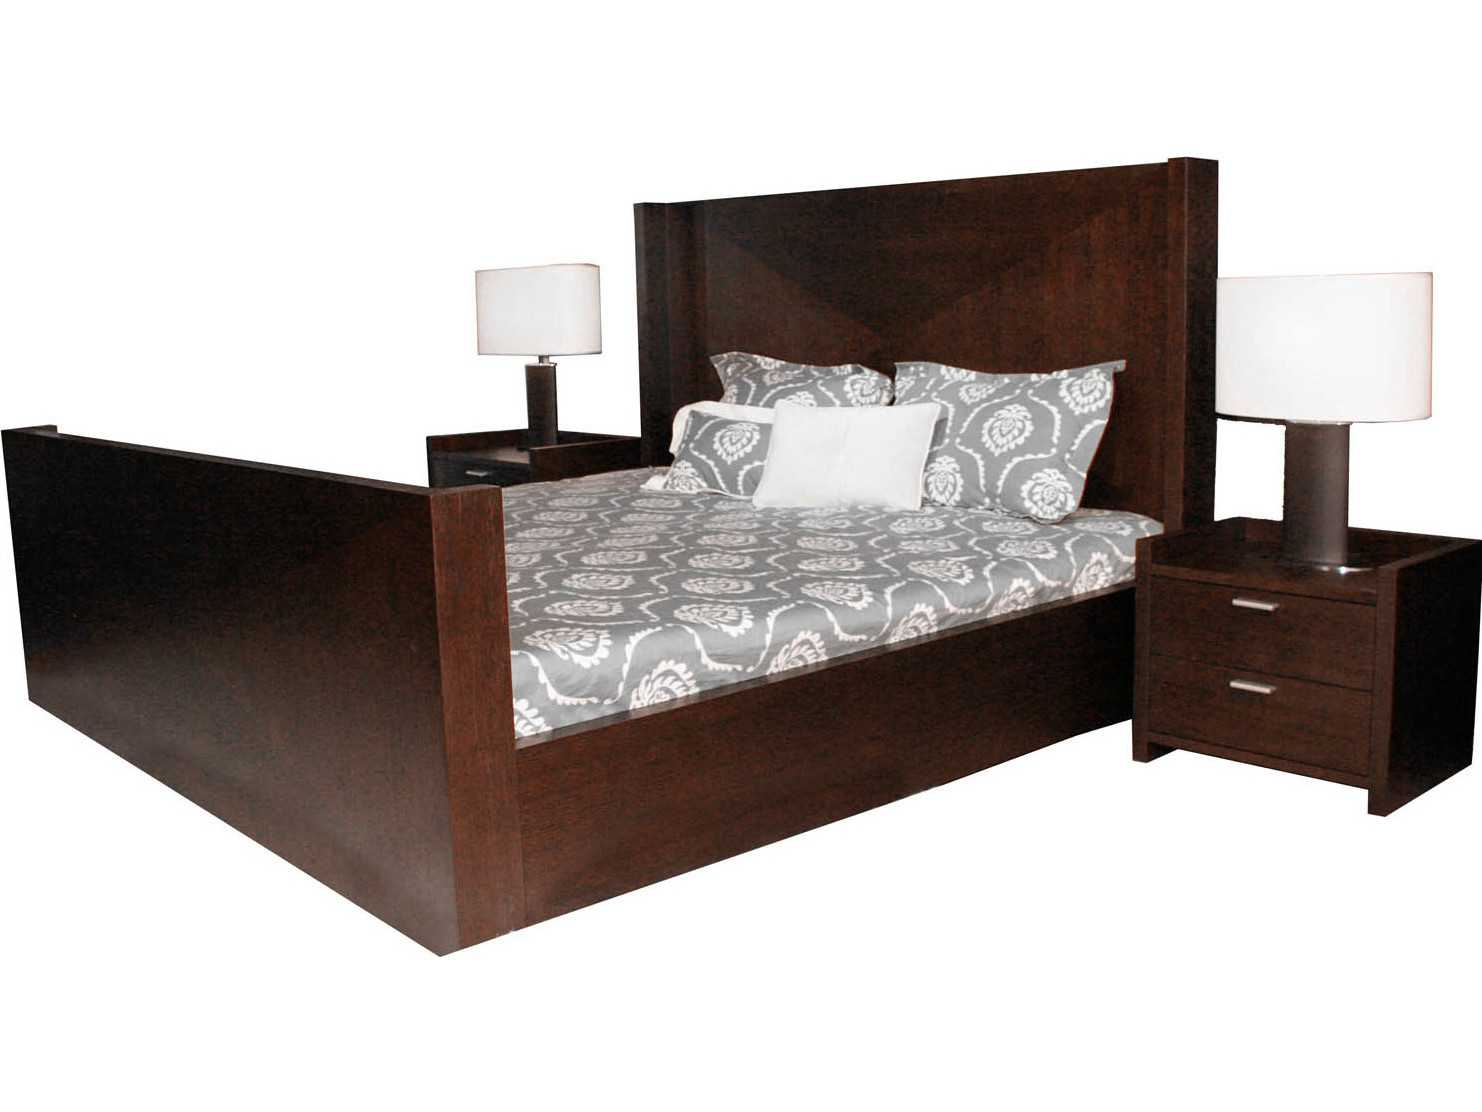 Star international furniture xena shelter dark walnut king for International decor bed